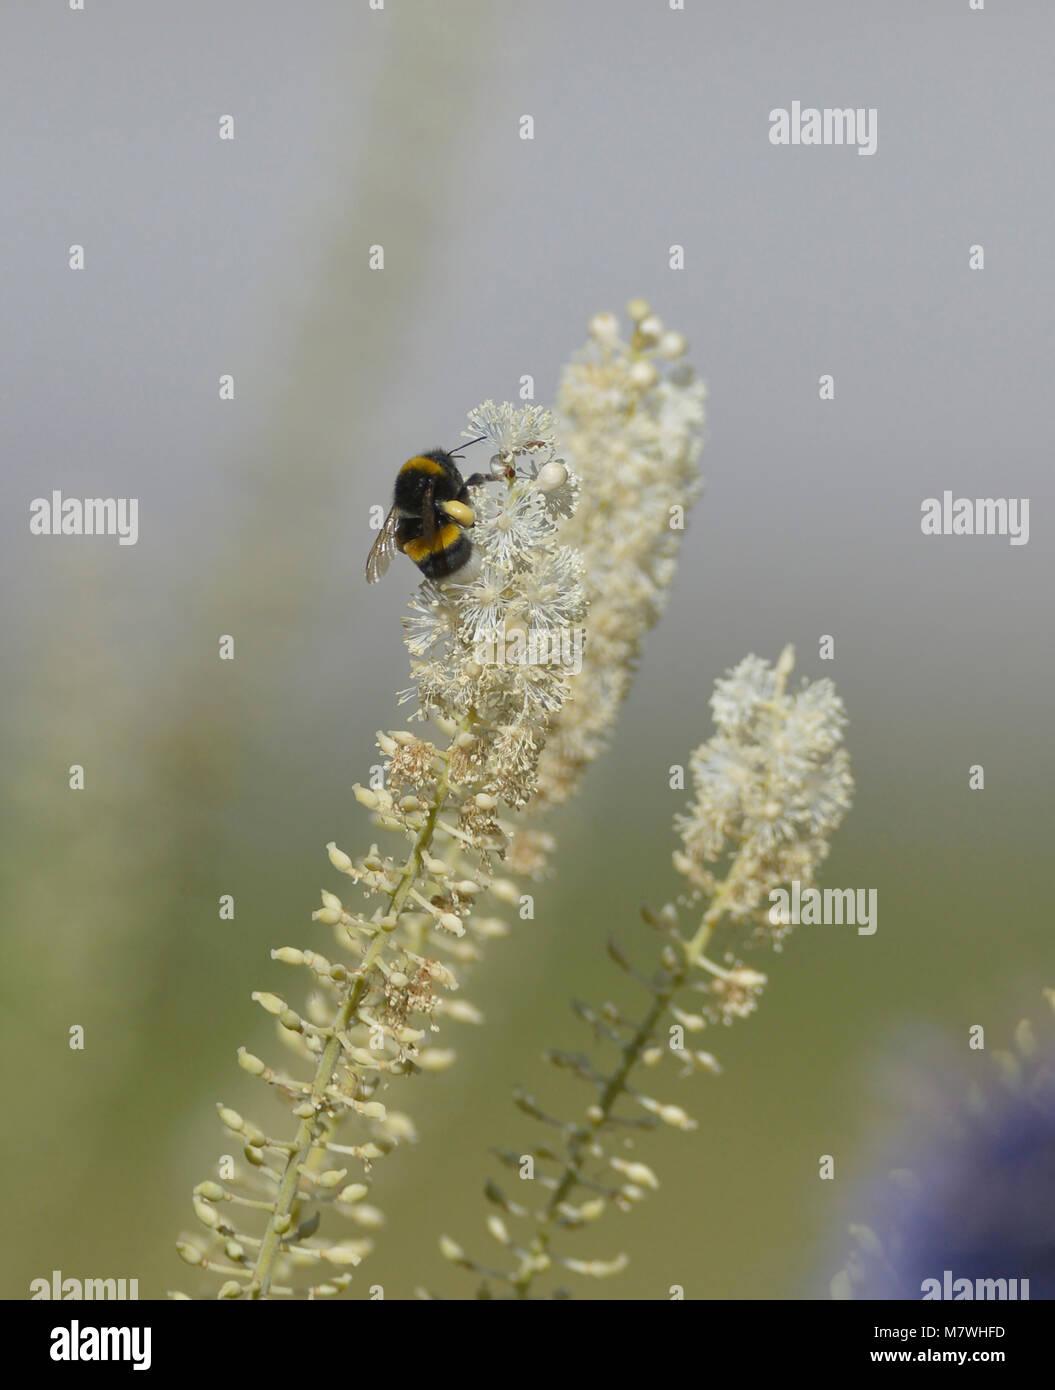 A small bumblebee collecting pollen - Stock Image